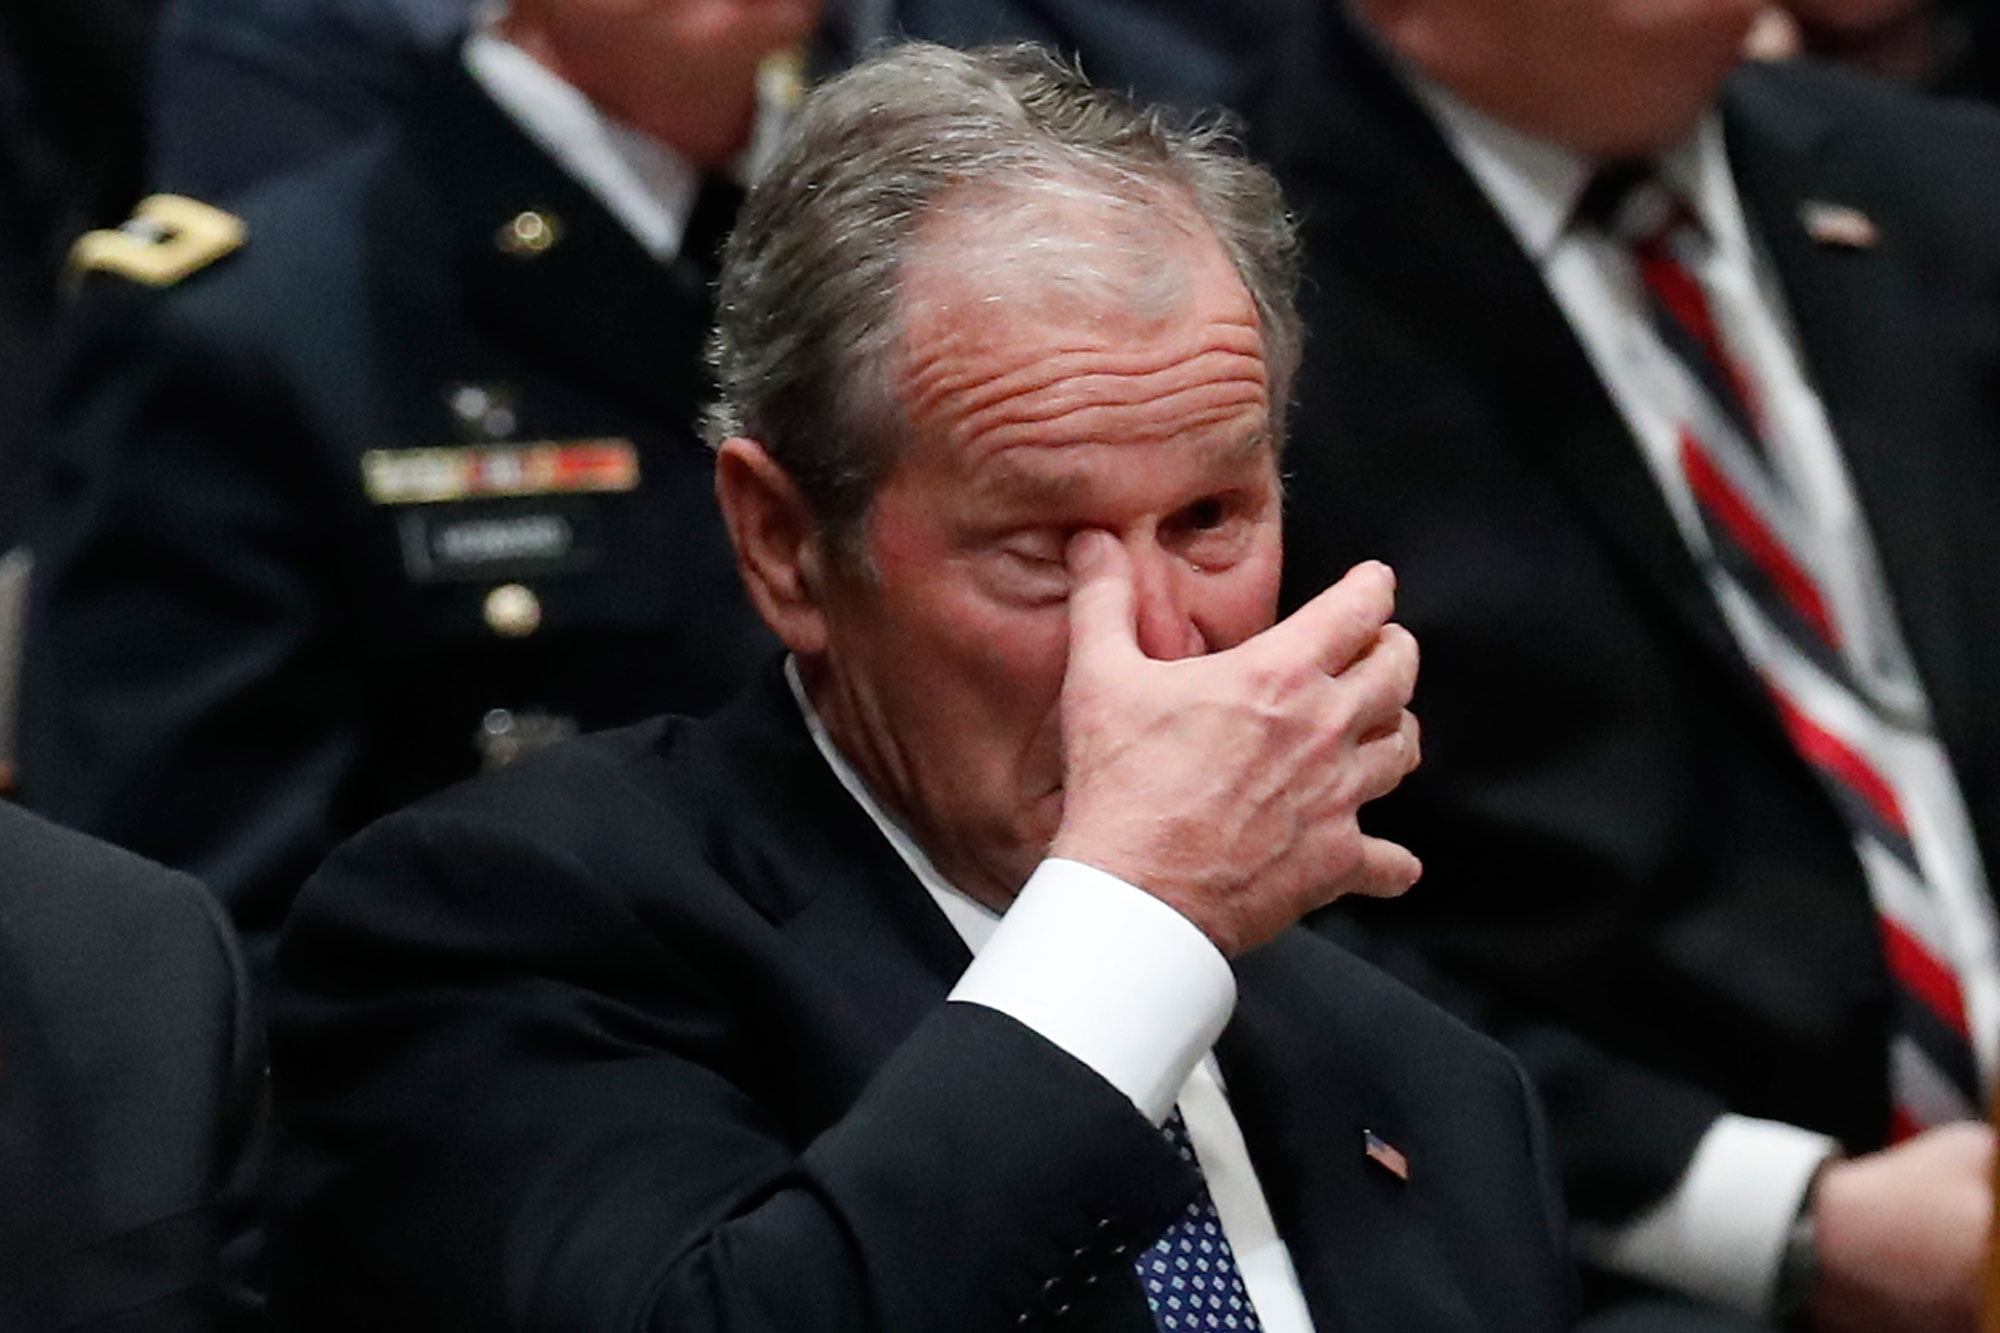 "<div class=""meta image-caption""><div class=""origin-logo origin-image none""><span>none</span></div><span class=""caption-text"">Former President George W. Bush wipes an eye at the State Funeral for his father, former President George H.W. Bush. (Alex Brandon, Pool/AP Photo)</span></div>"